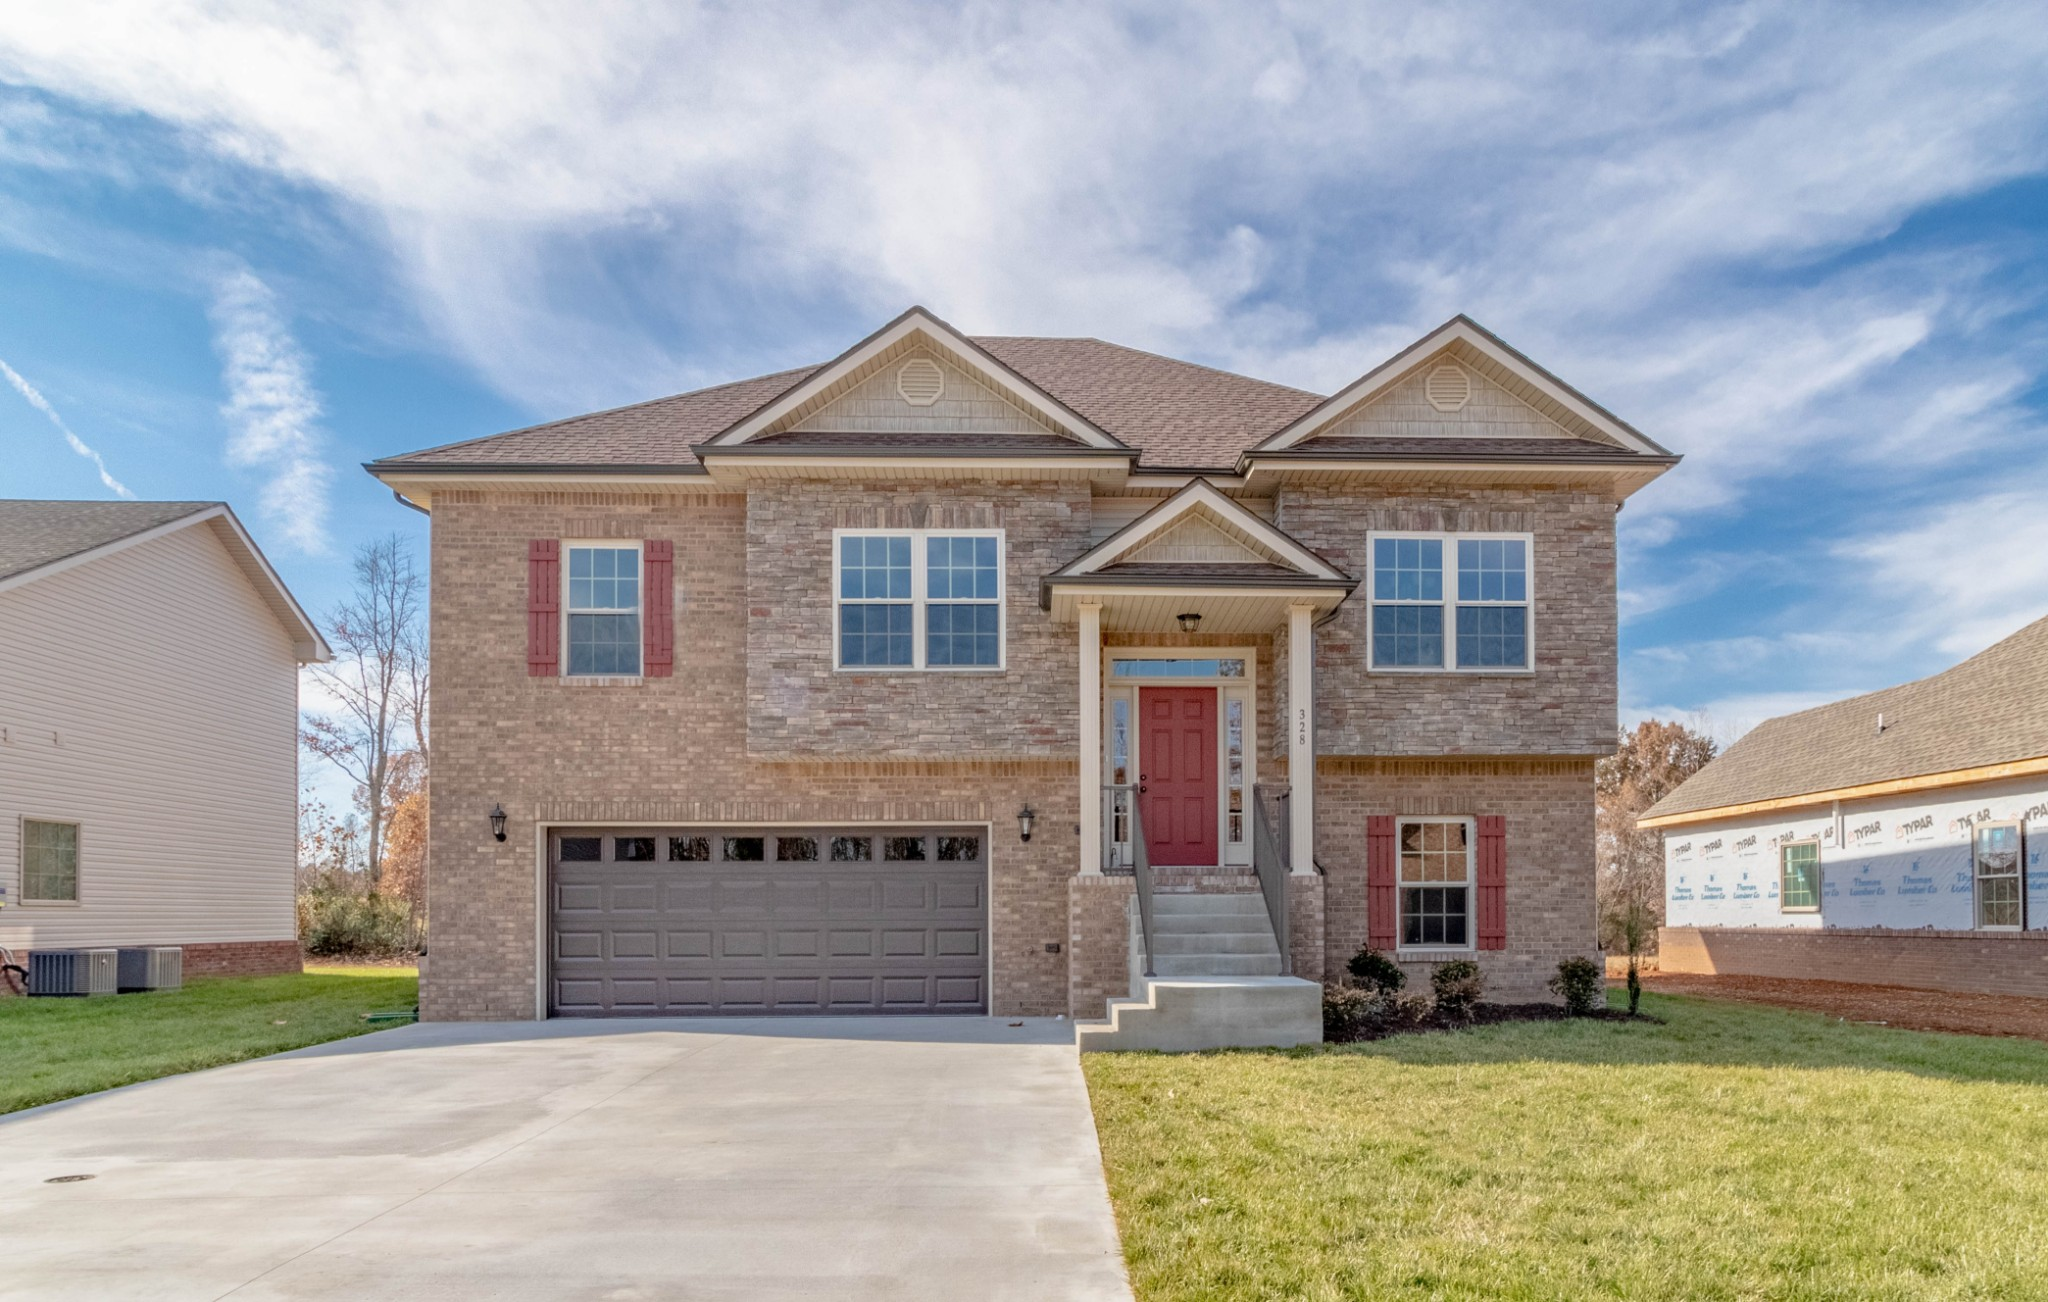 340 Chase Dr, Clarksville, TN 37043 - Clarksville, TN real estate listing